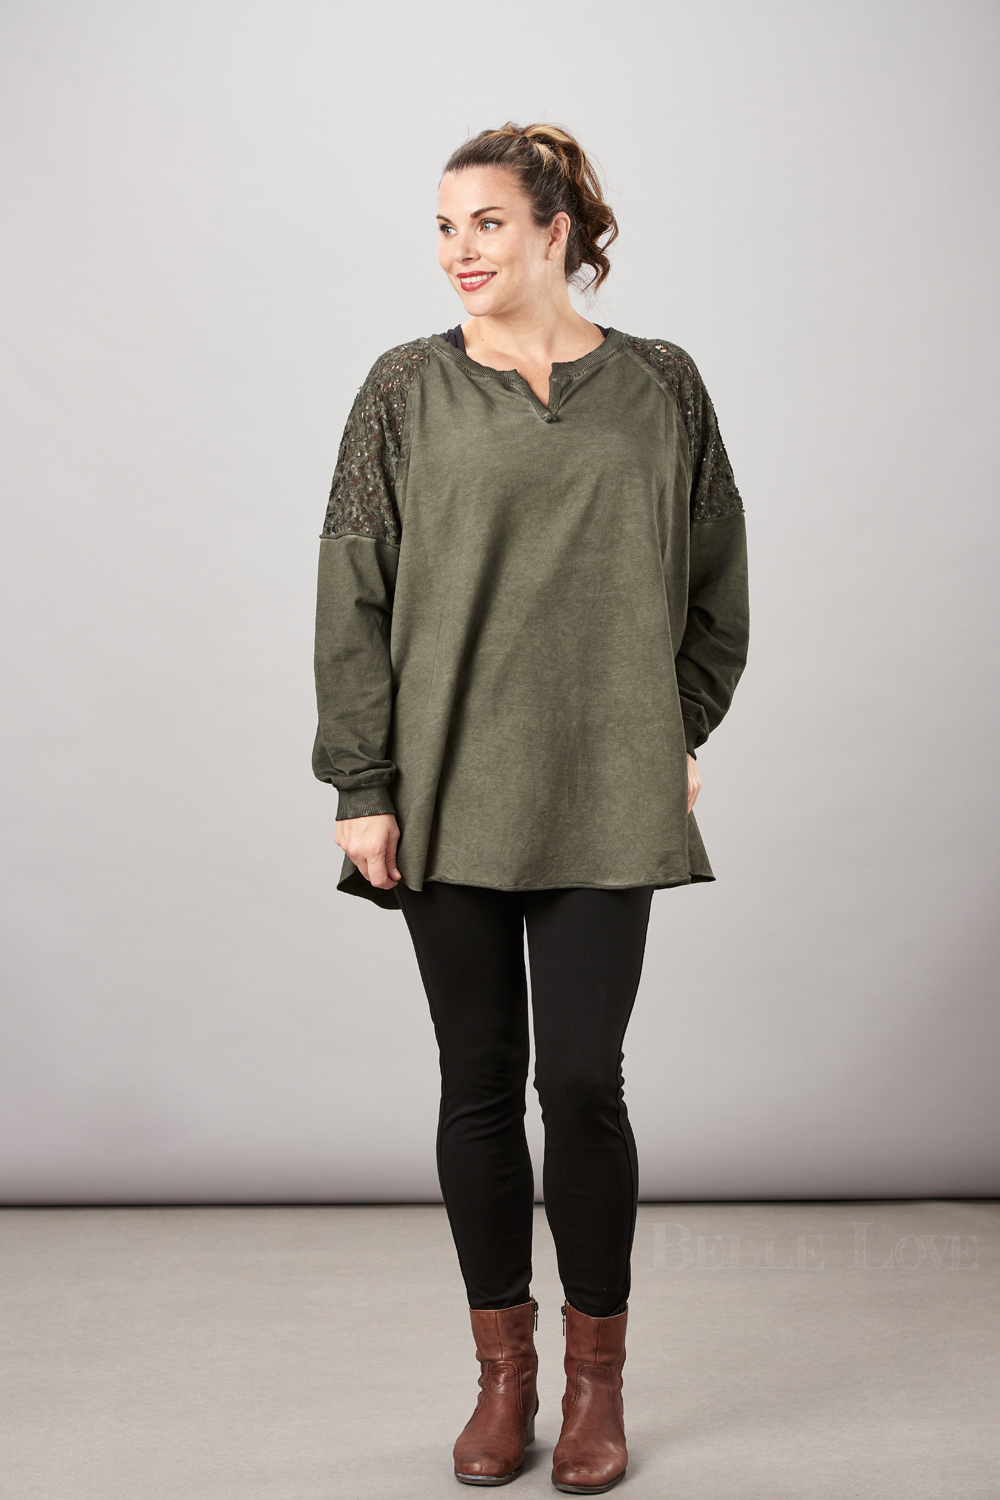 Belle Love Italy Sequin Lace Top